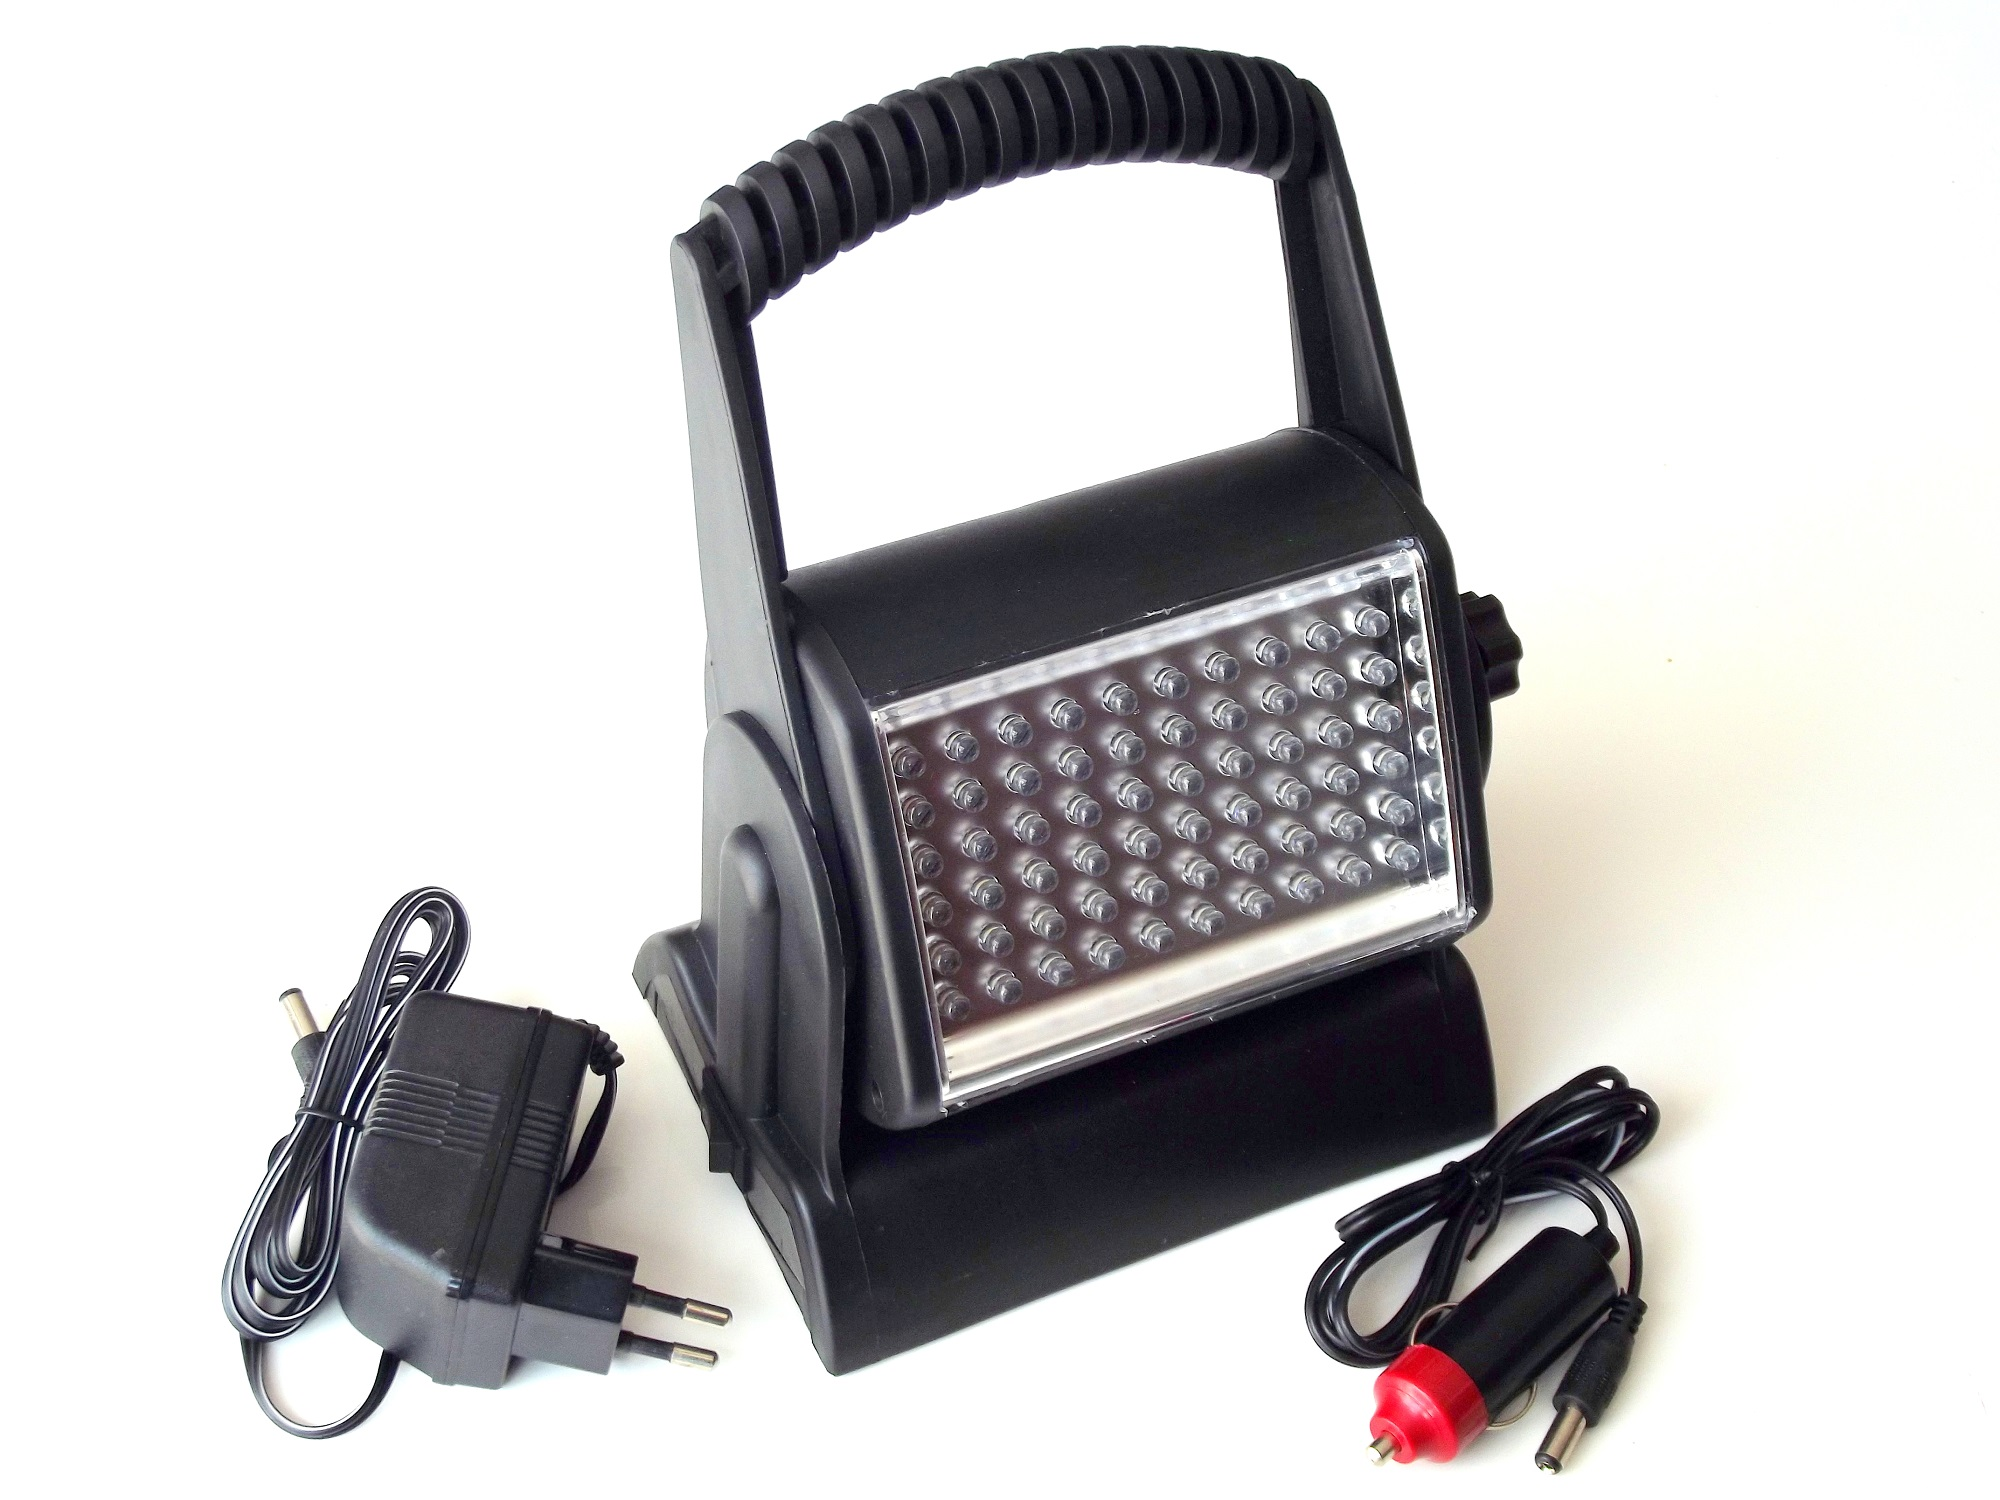 60 led akku arbeitsleuchte arbeitslampe baulampe strahler scheinwerfer 12v 230v ebay. Black Bedroom Furniture Sets. Home Design Ideas